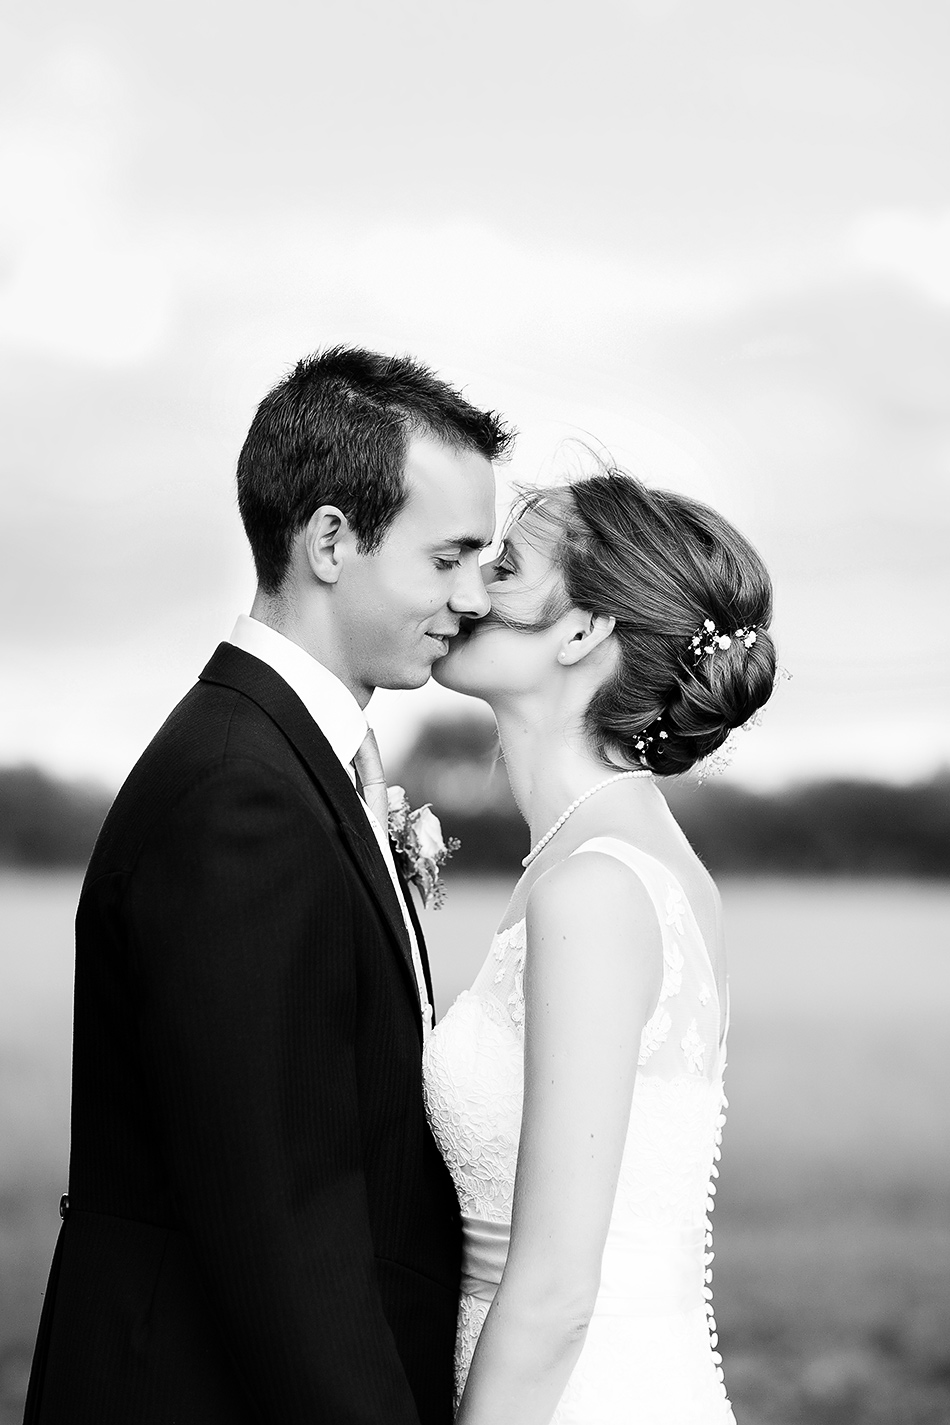 brisbane wedding photographer black and white wedding photography portrait of a bride and groom in a field